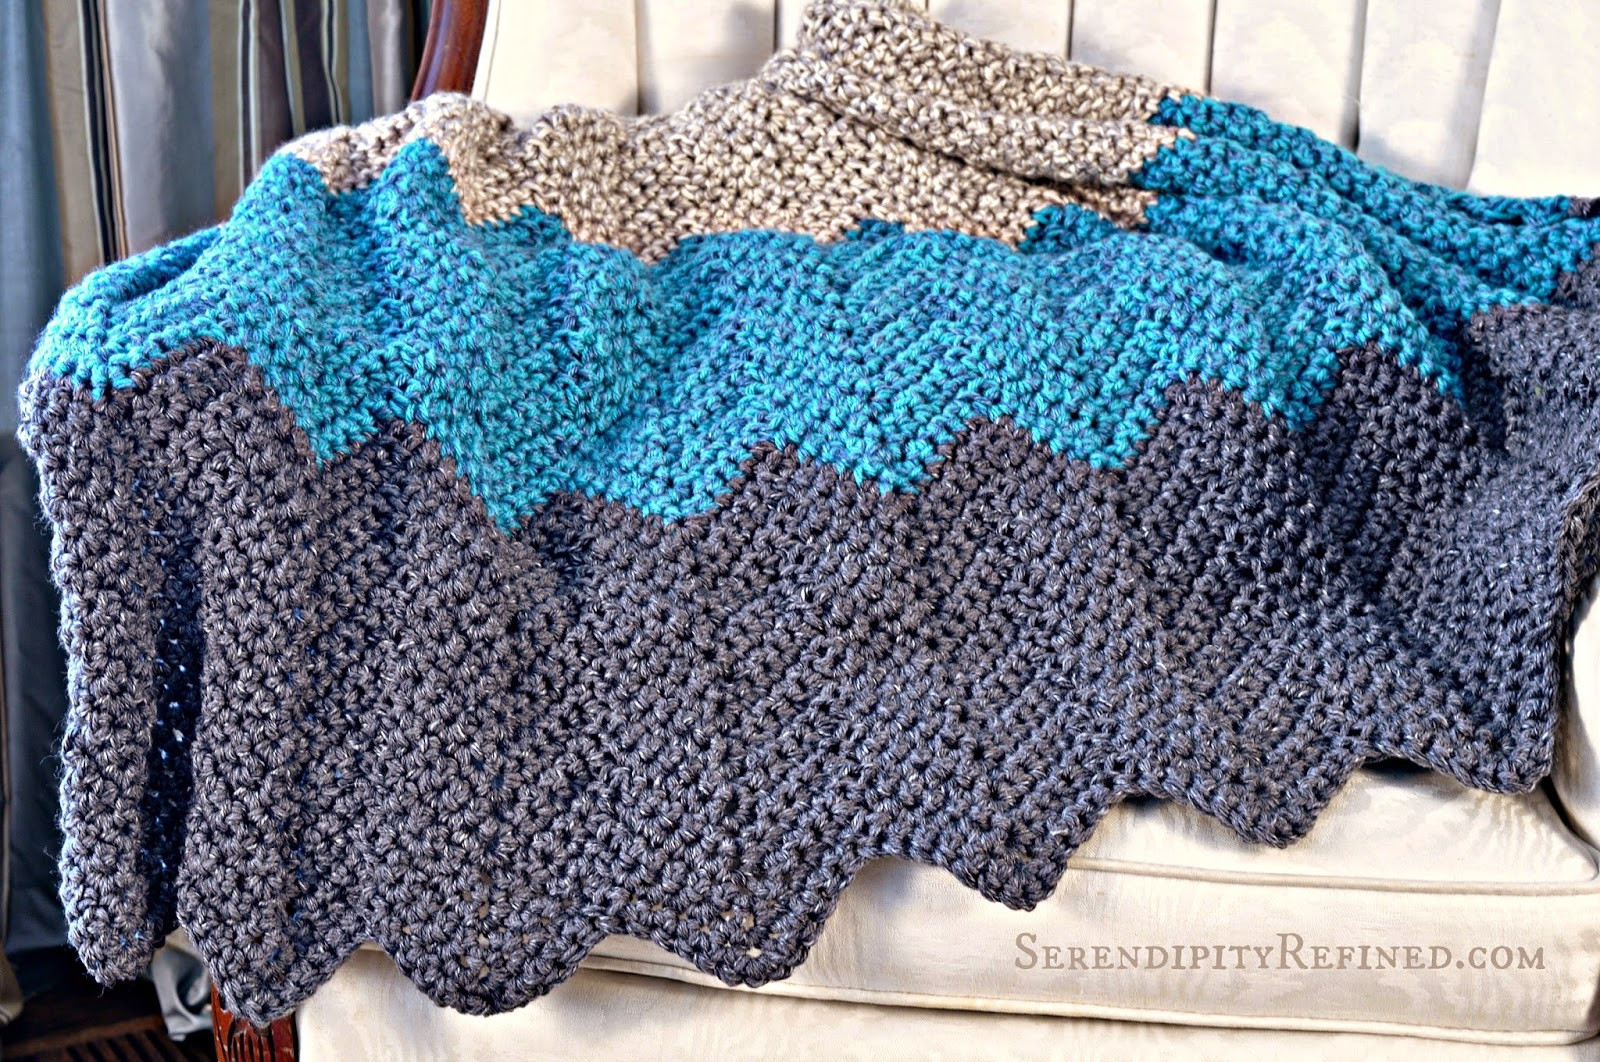 Best Of Easy Crochet Throw Patterns for Beginners Easy Beginner Crochet Patterns Of Marvelous 41 Pictures Easy Beginner Crochet Patterns